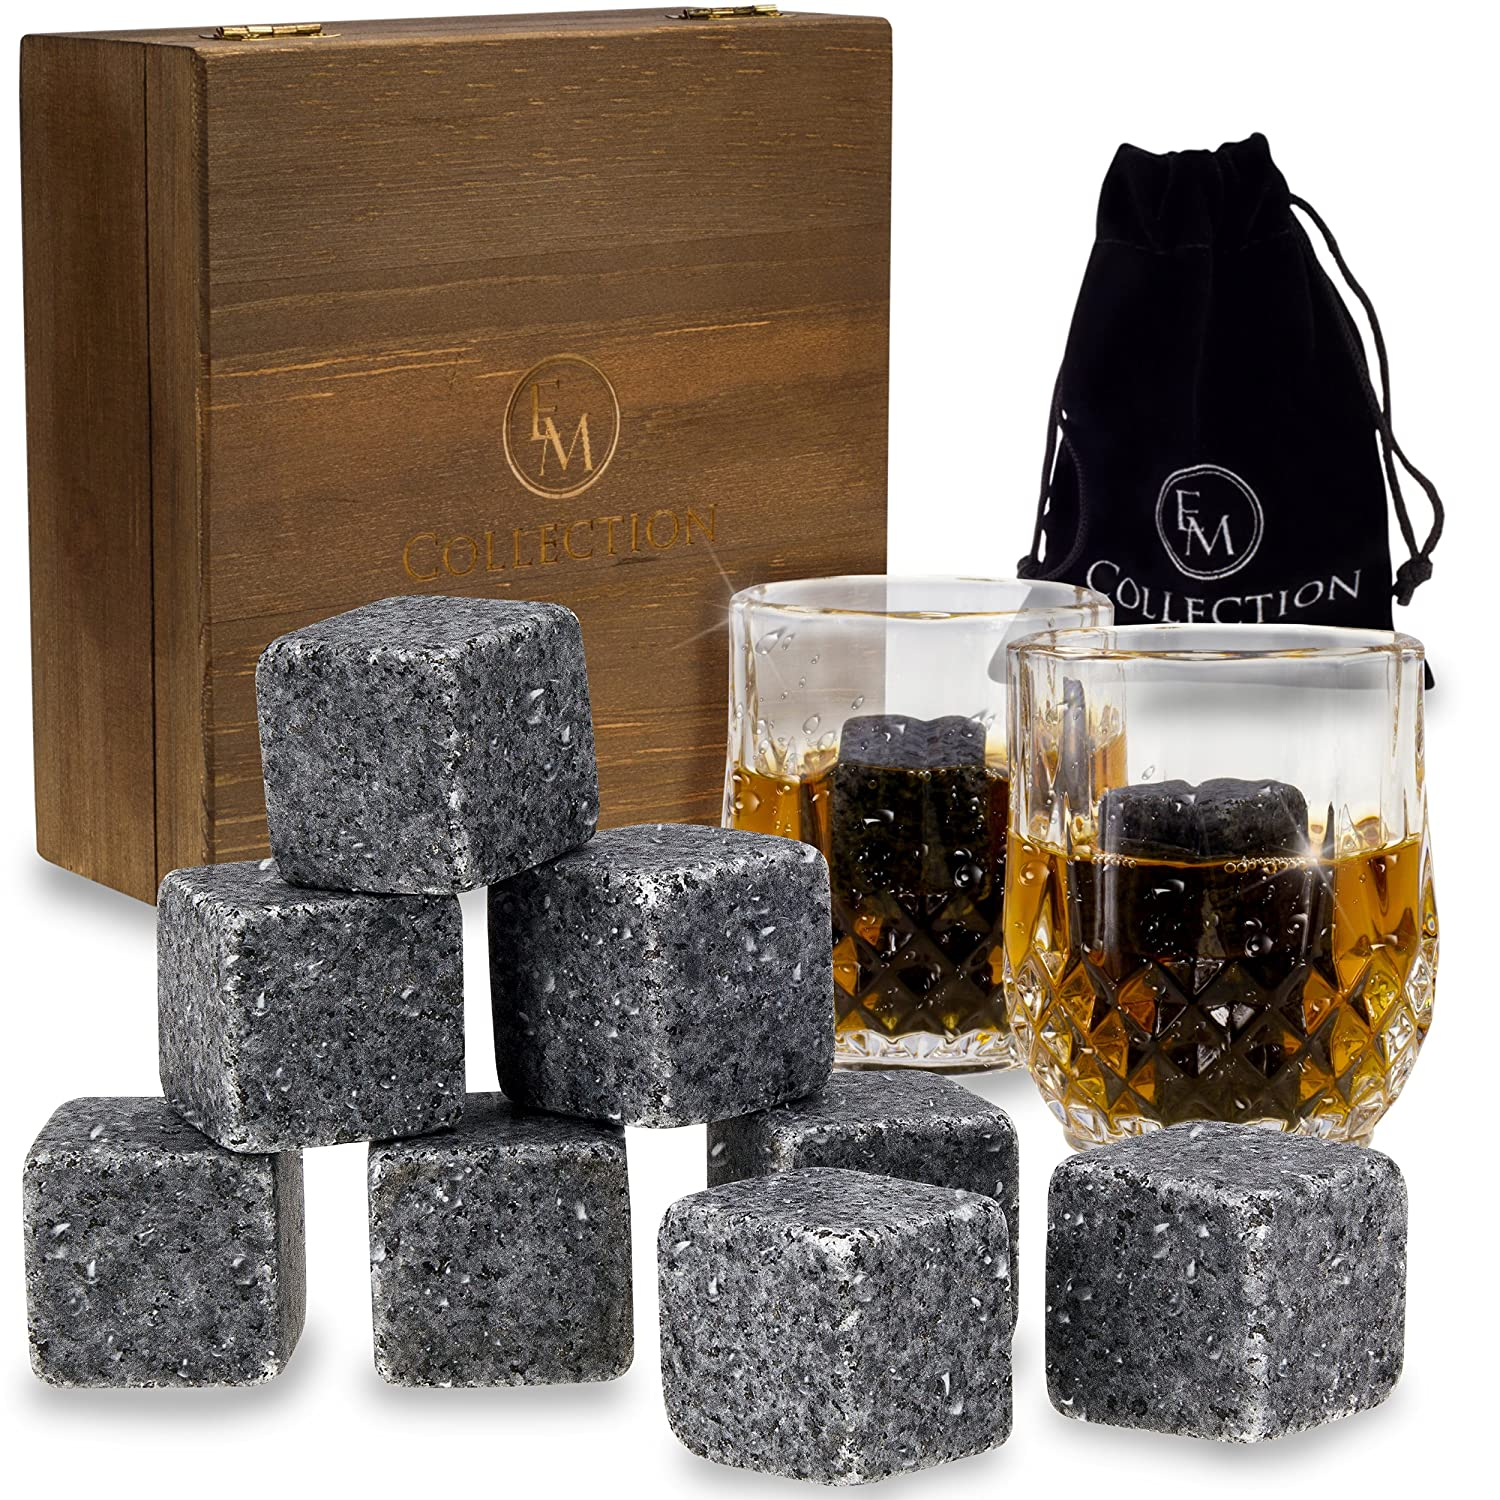 Whiskey Stones Gift Set w/8 Granite Whiskey Rocks,2 Crystal Whiskey Glasses & Velvet Bag by EMcollection|Reusable Cooling Ice Cubes|Chill Your Scotch & Cold Drinks|Packed in Elegant Wooden Box SYNCHKG118768